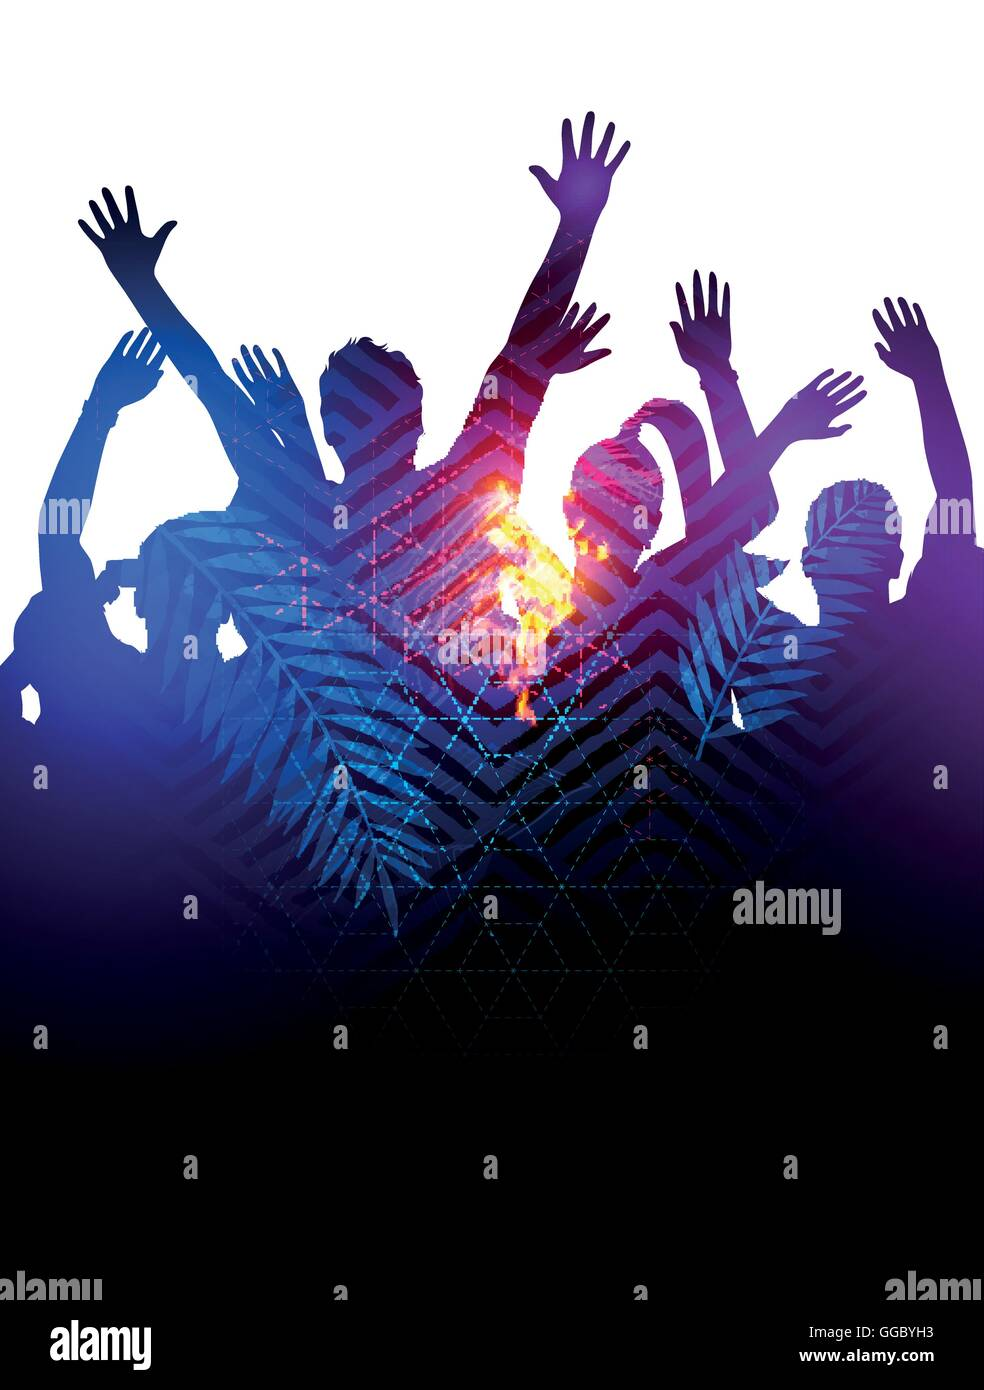 Double Exposure effect vector illustration of a huge crowd of young people dancing at a festival. - Stock Image